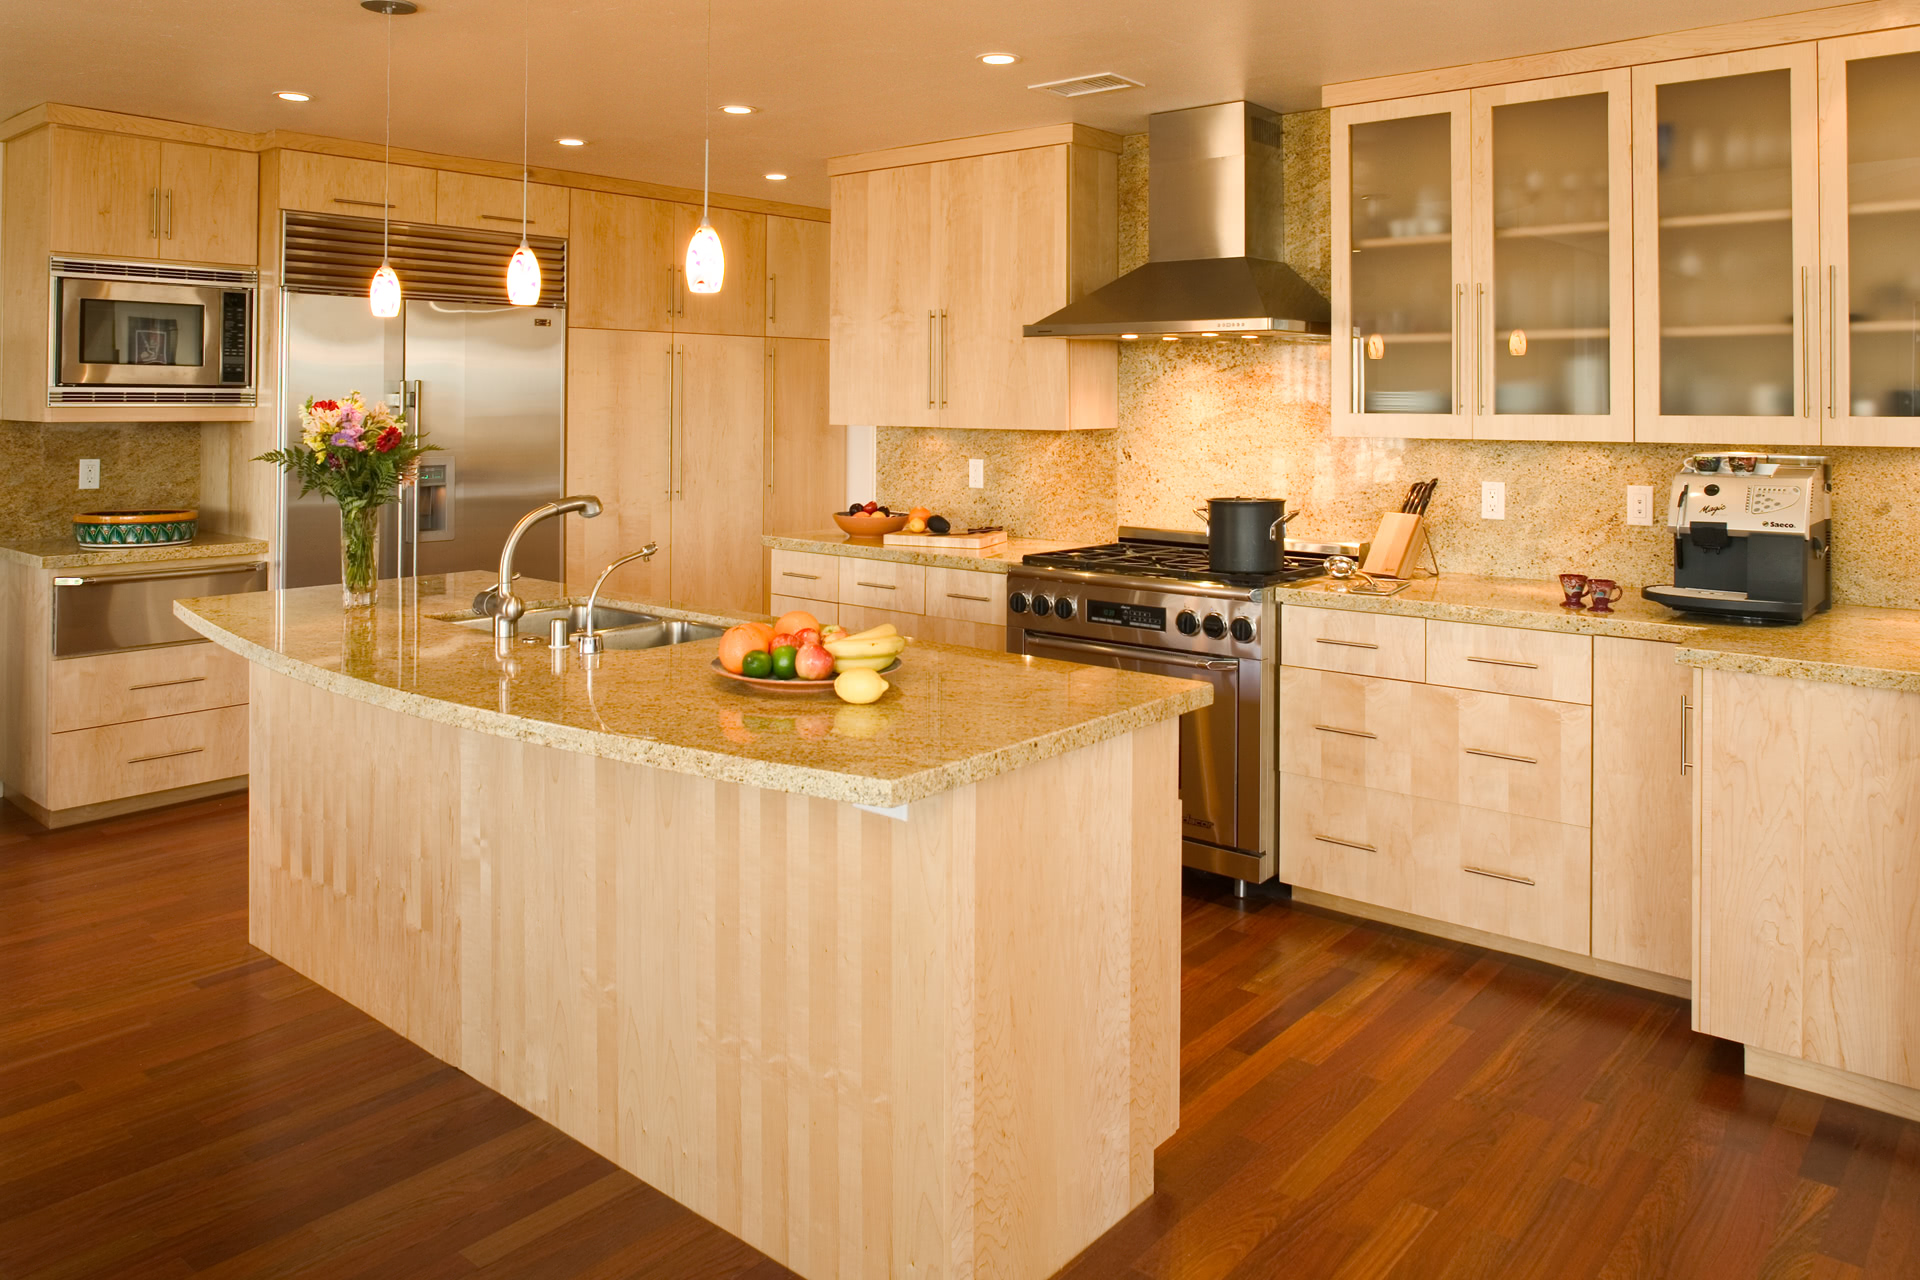 Custom Contemporary Kitchen Cabinets - Alder Wood Java ...